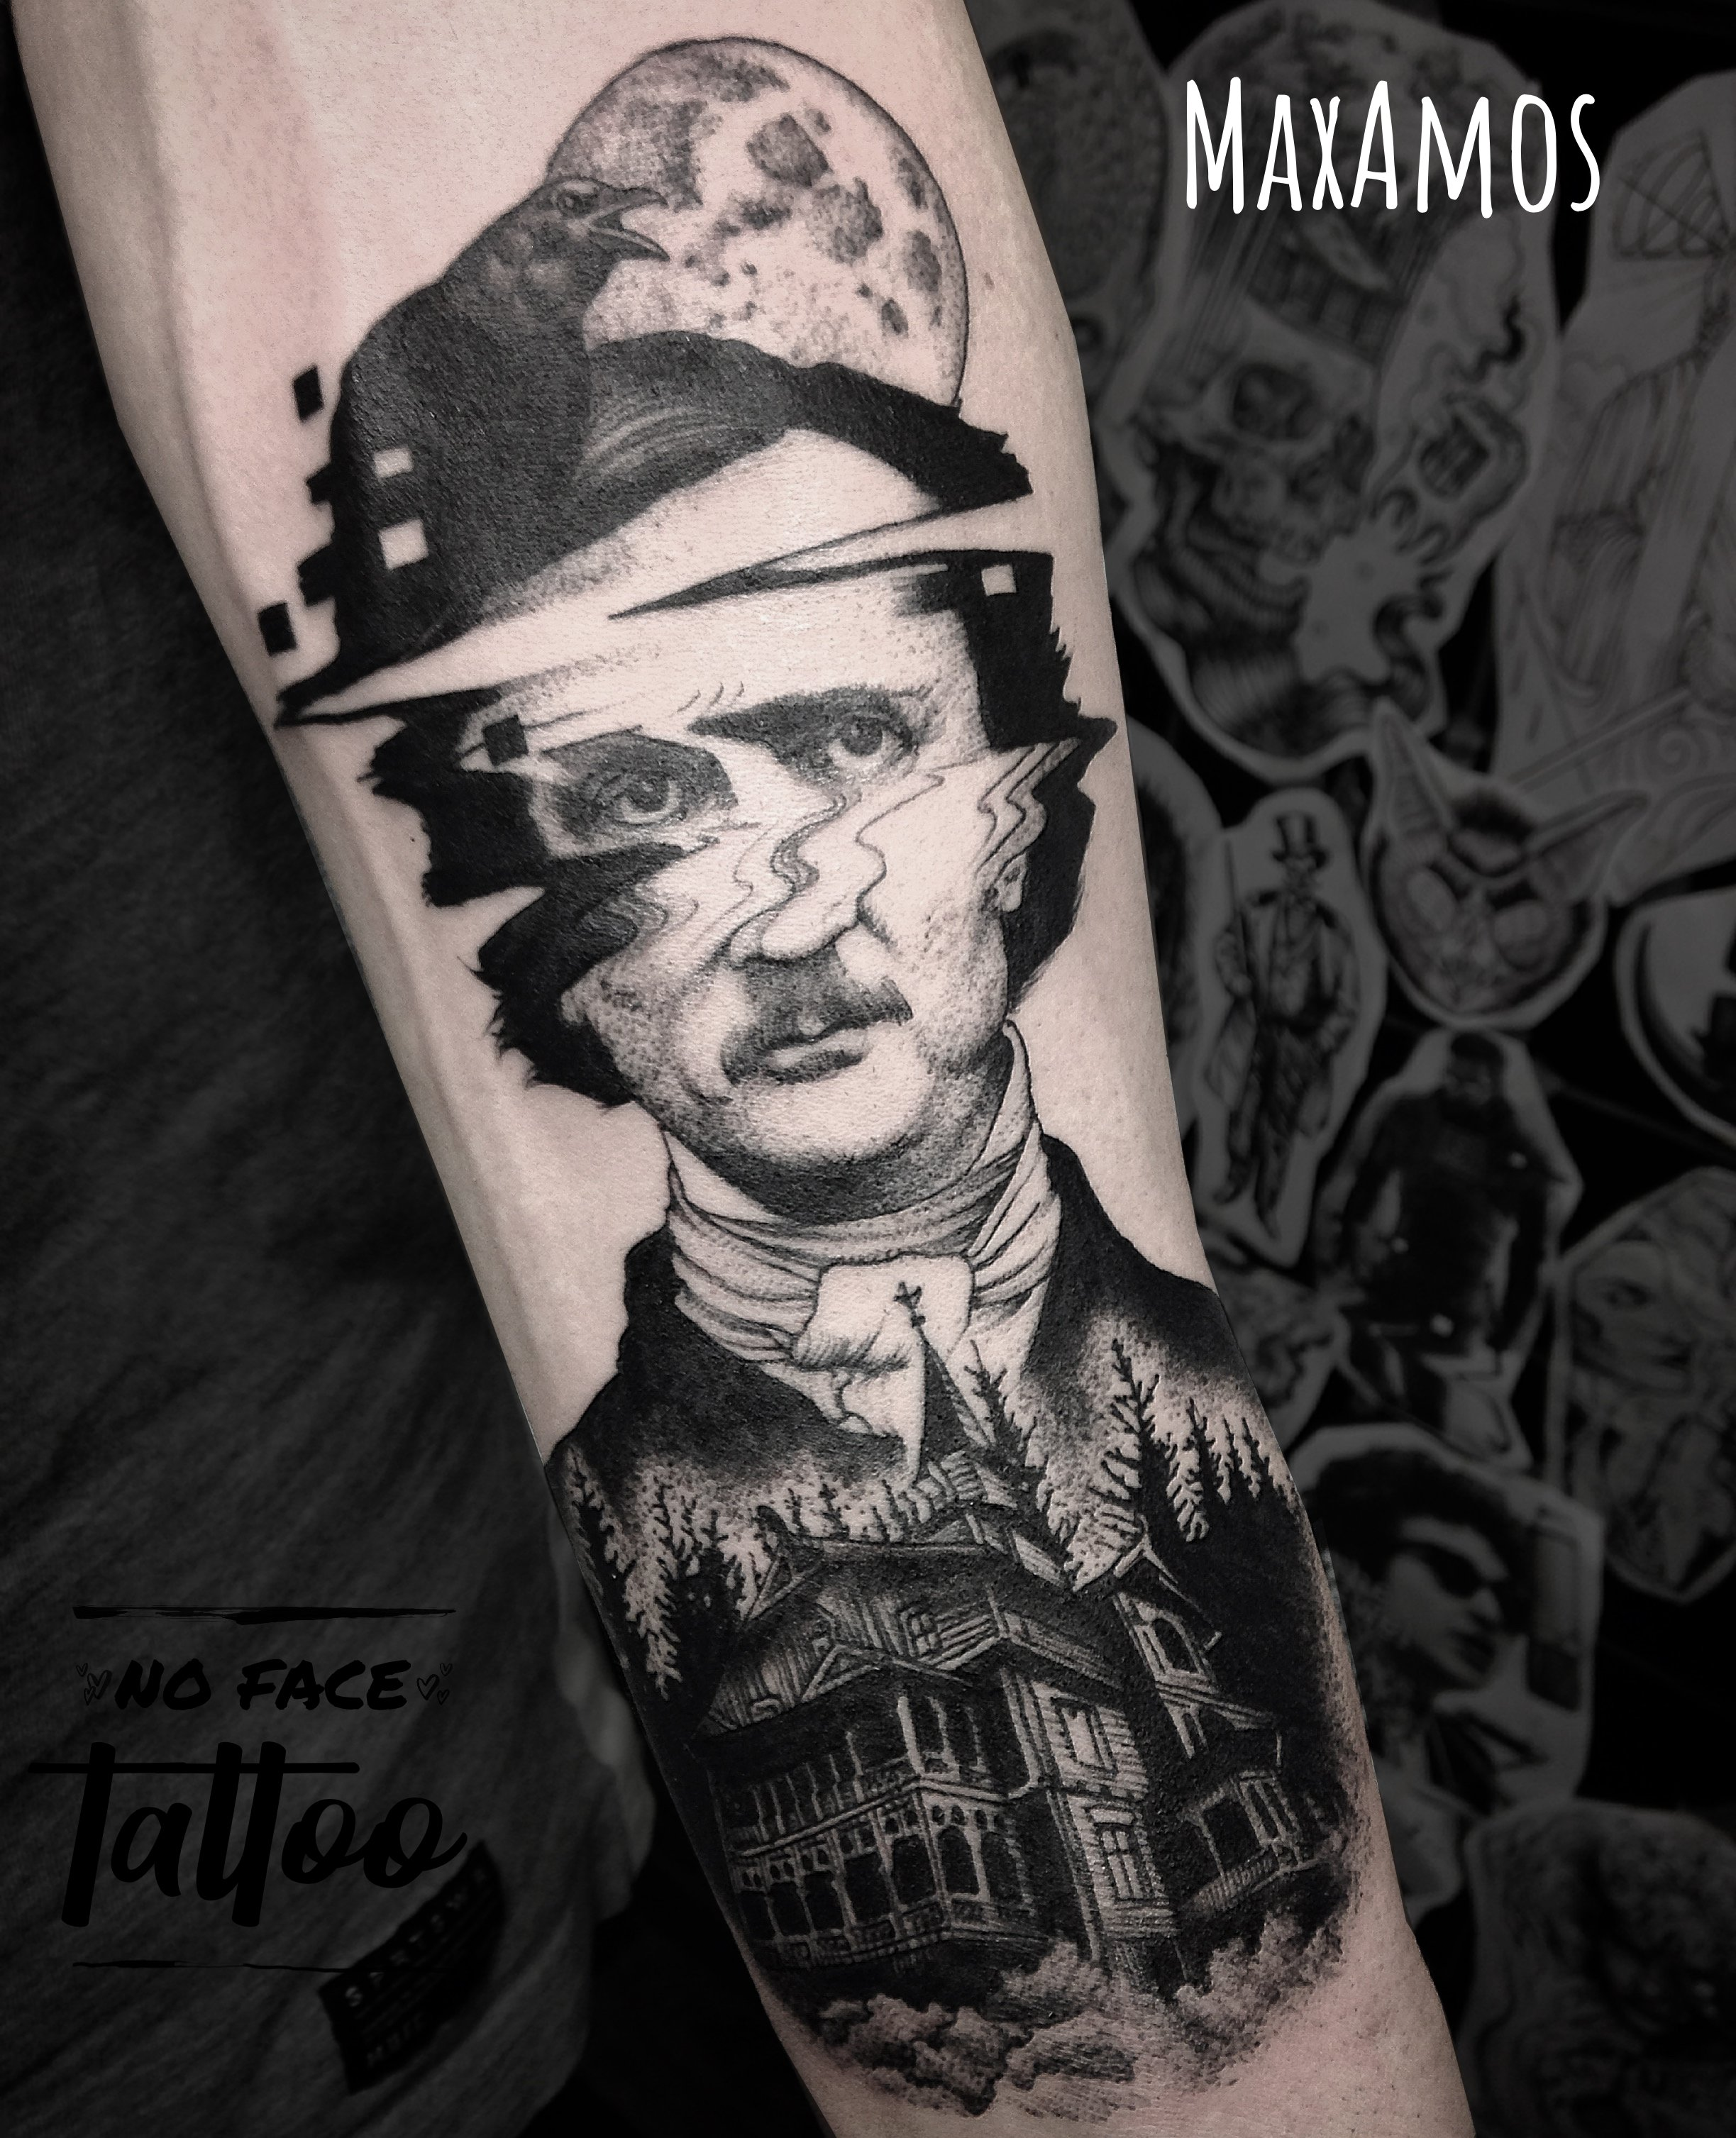 Glitched portrait tattoo of Edgar Allan Poe